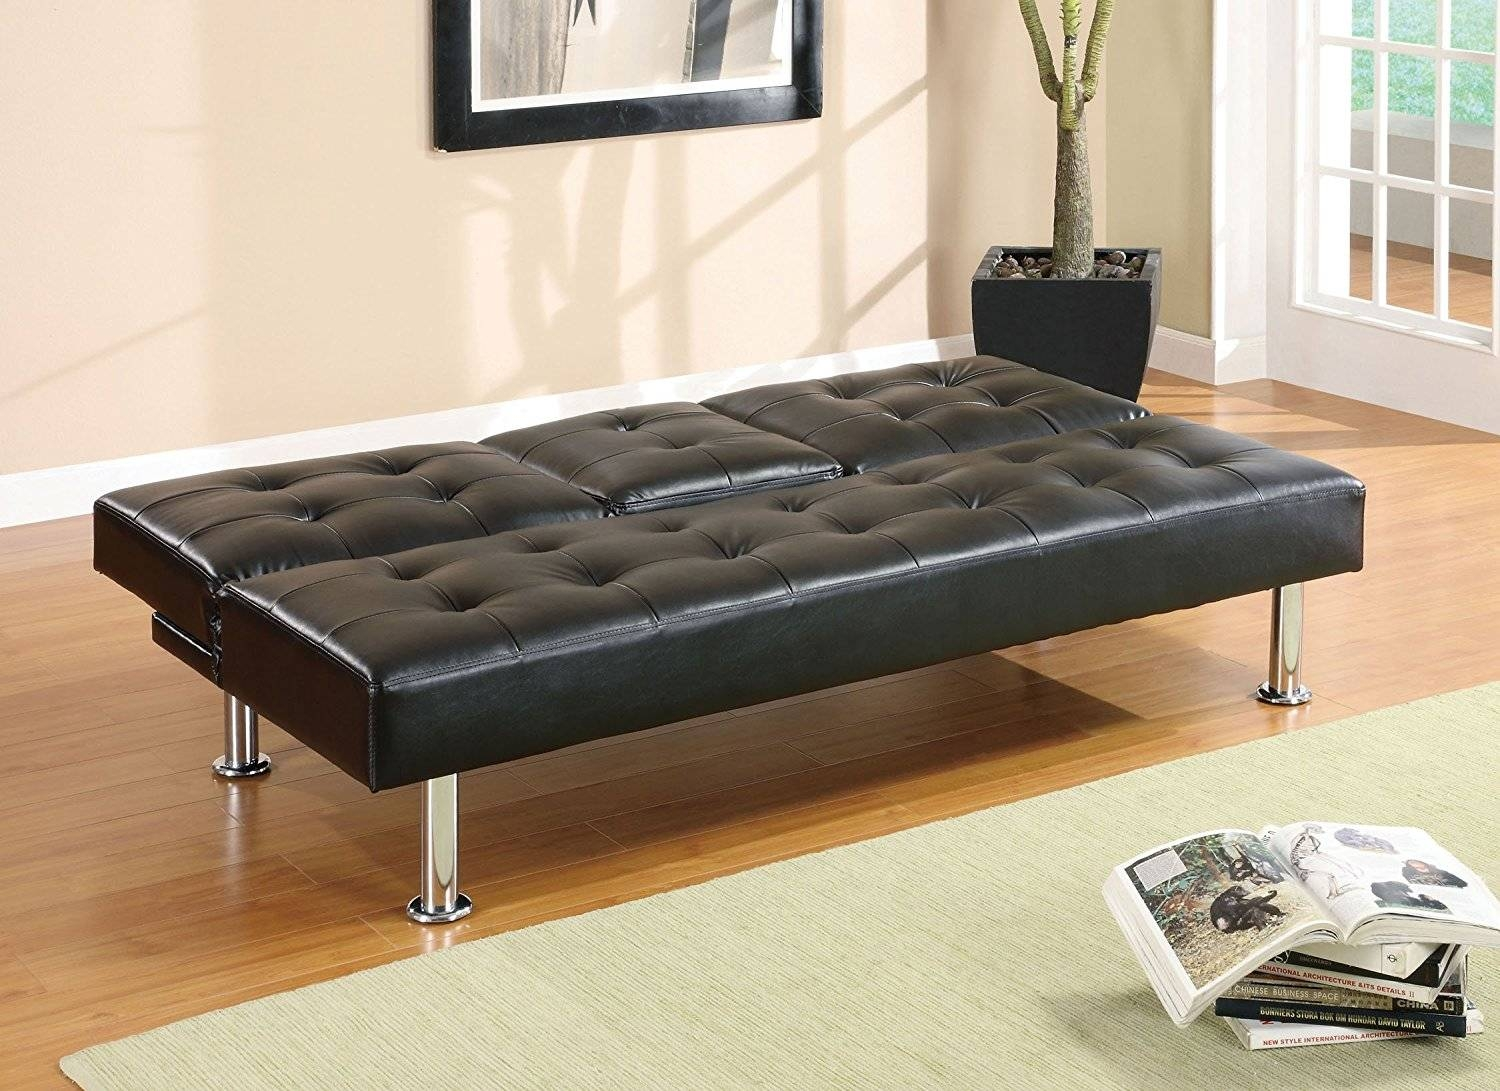 Furniture: Futon Kmart | Futon Beds Walmart | Futons For Teens intended for Kmart Futon Beds (Image 5 of 15)